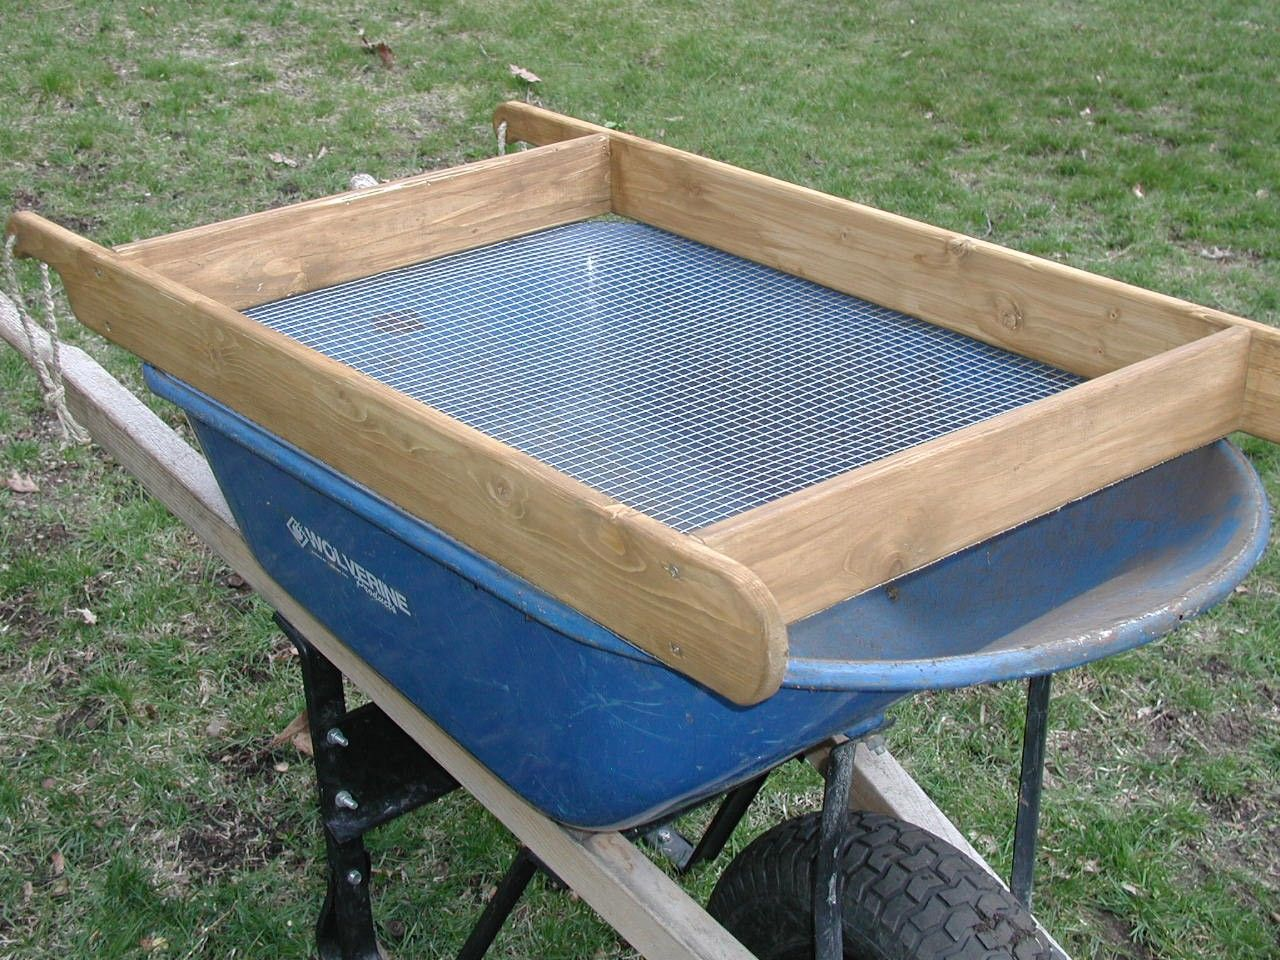 compost sifter | Compost | Pinterest | Composting, Gardens and ...